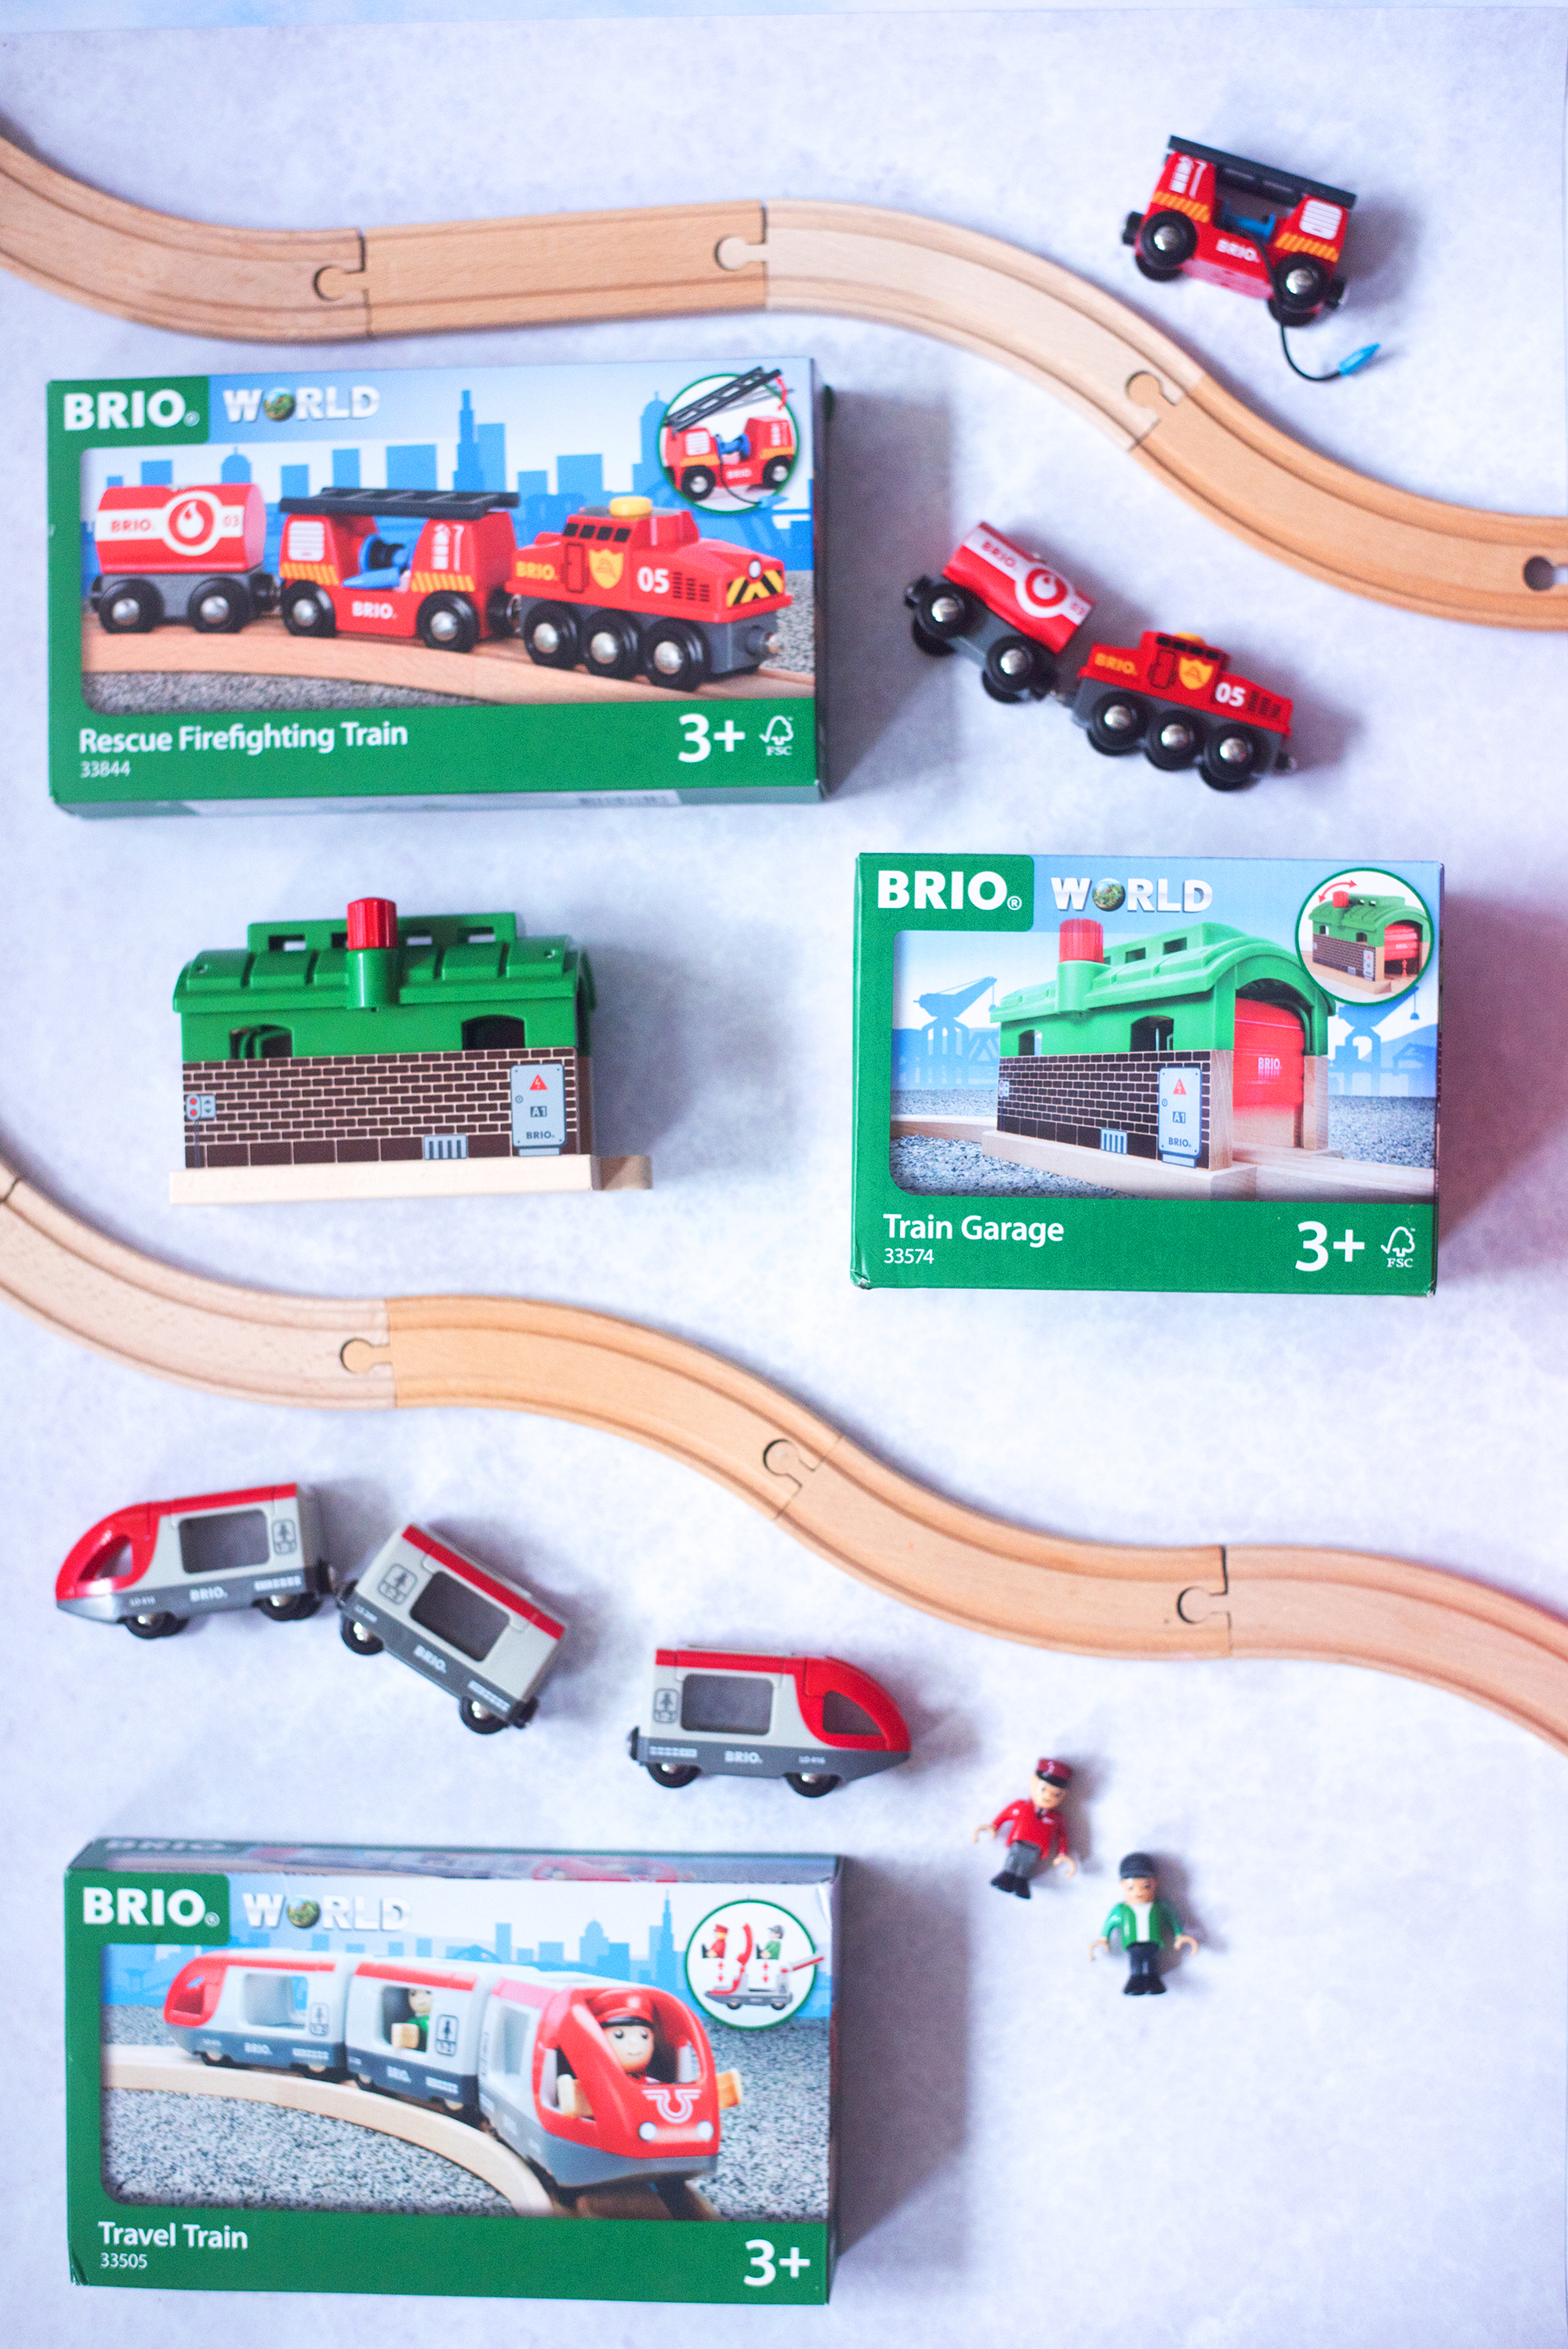 brio travel train firefighting truck train garage